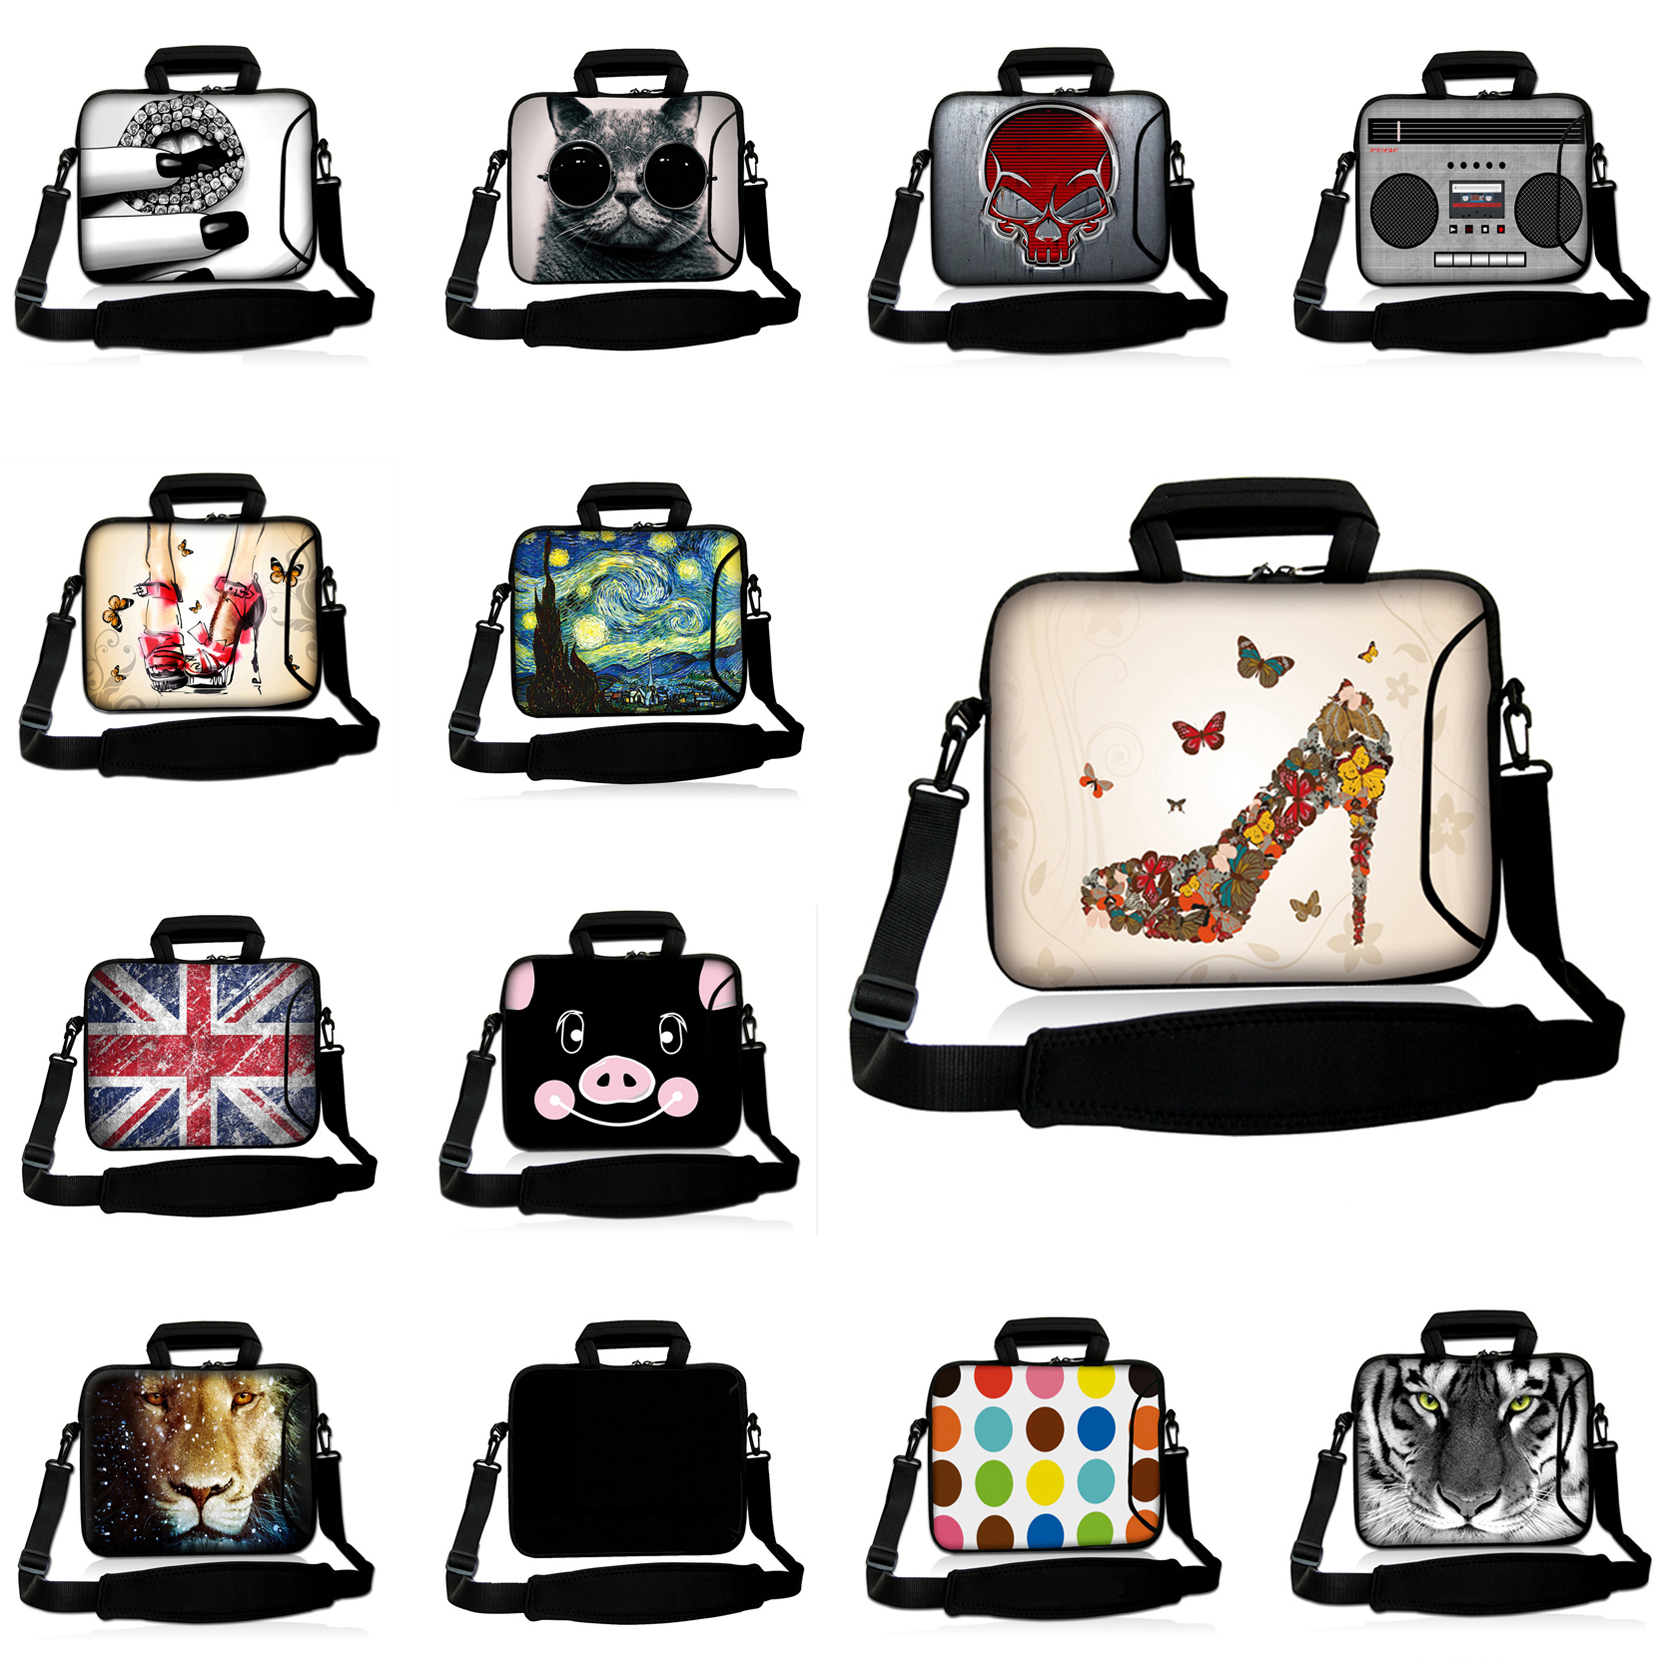 2017 Newest Messenger Handbag Laptop Cases 14 13 12 10 15 17 16.8 13.3 14.1 17.3 15.6 In ...